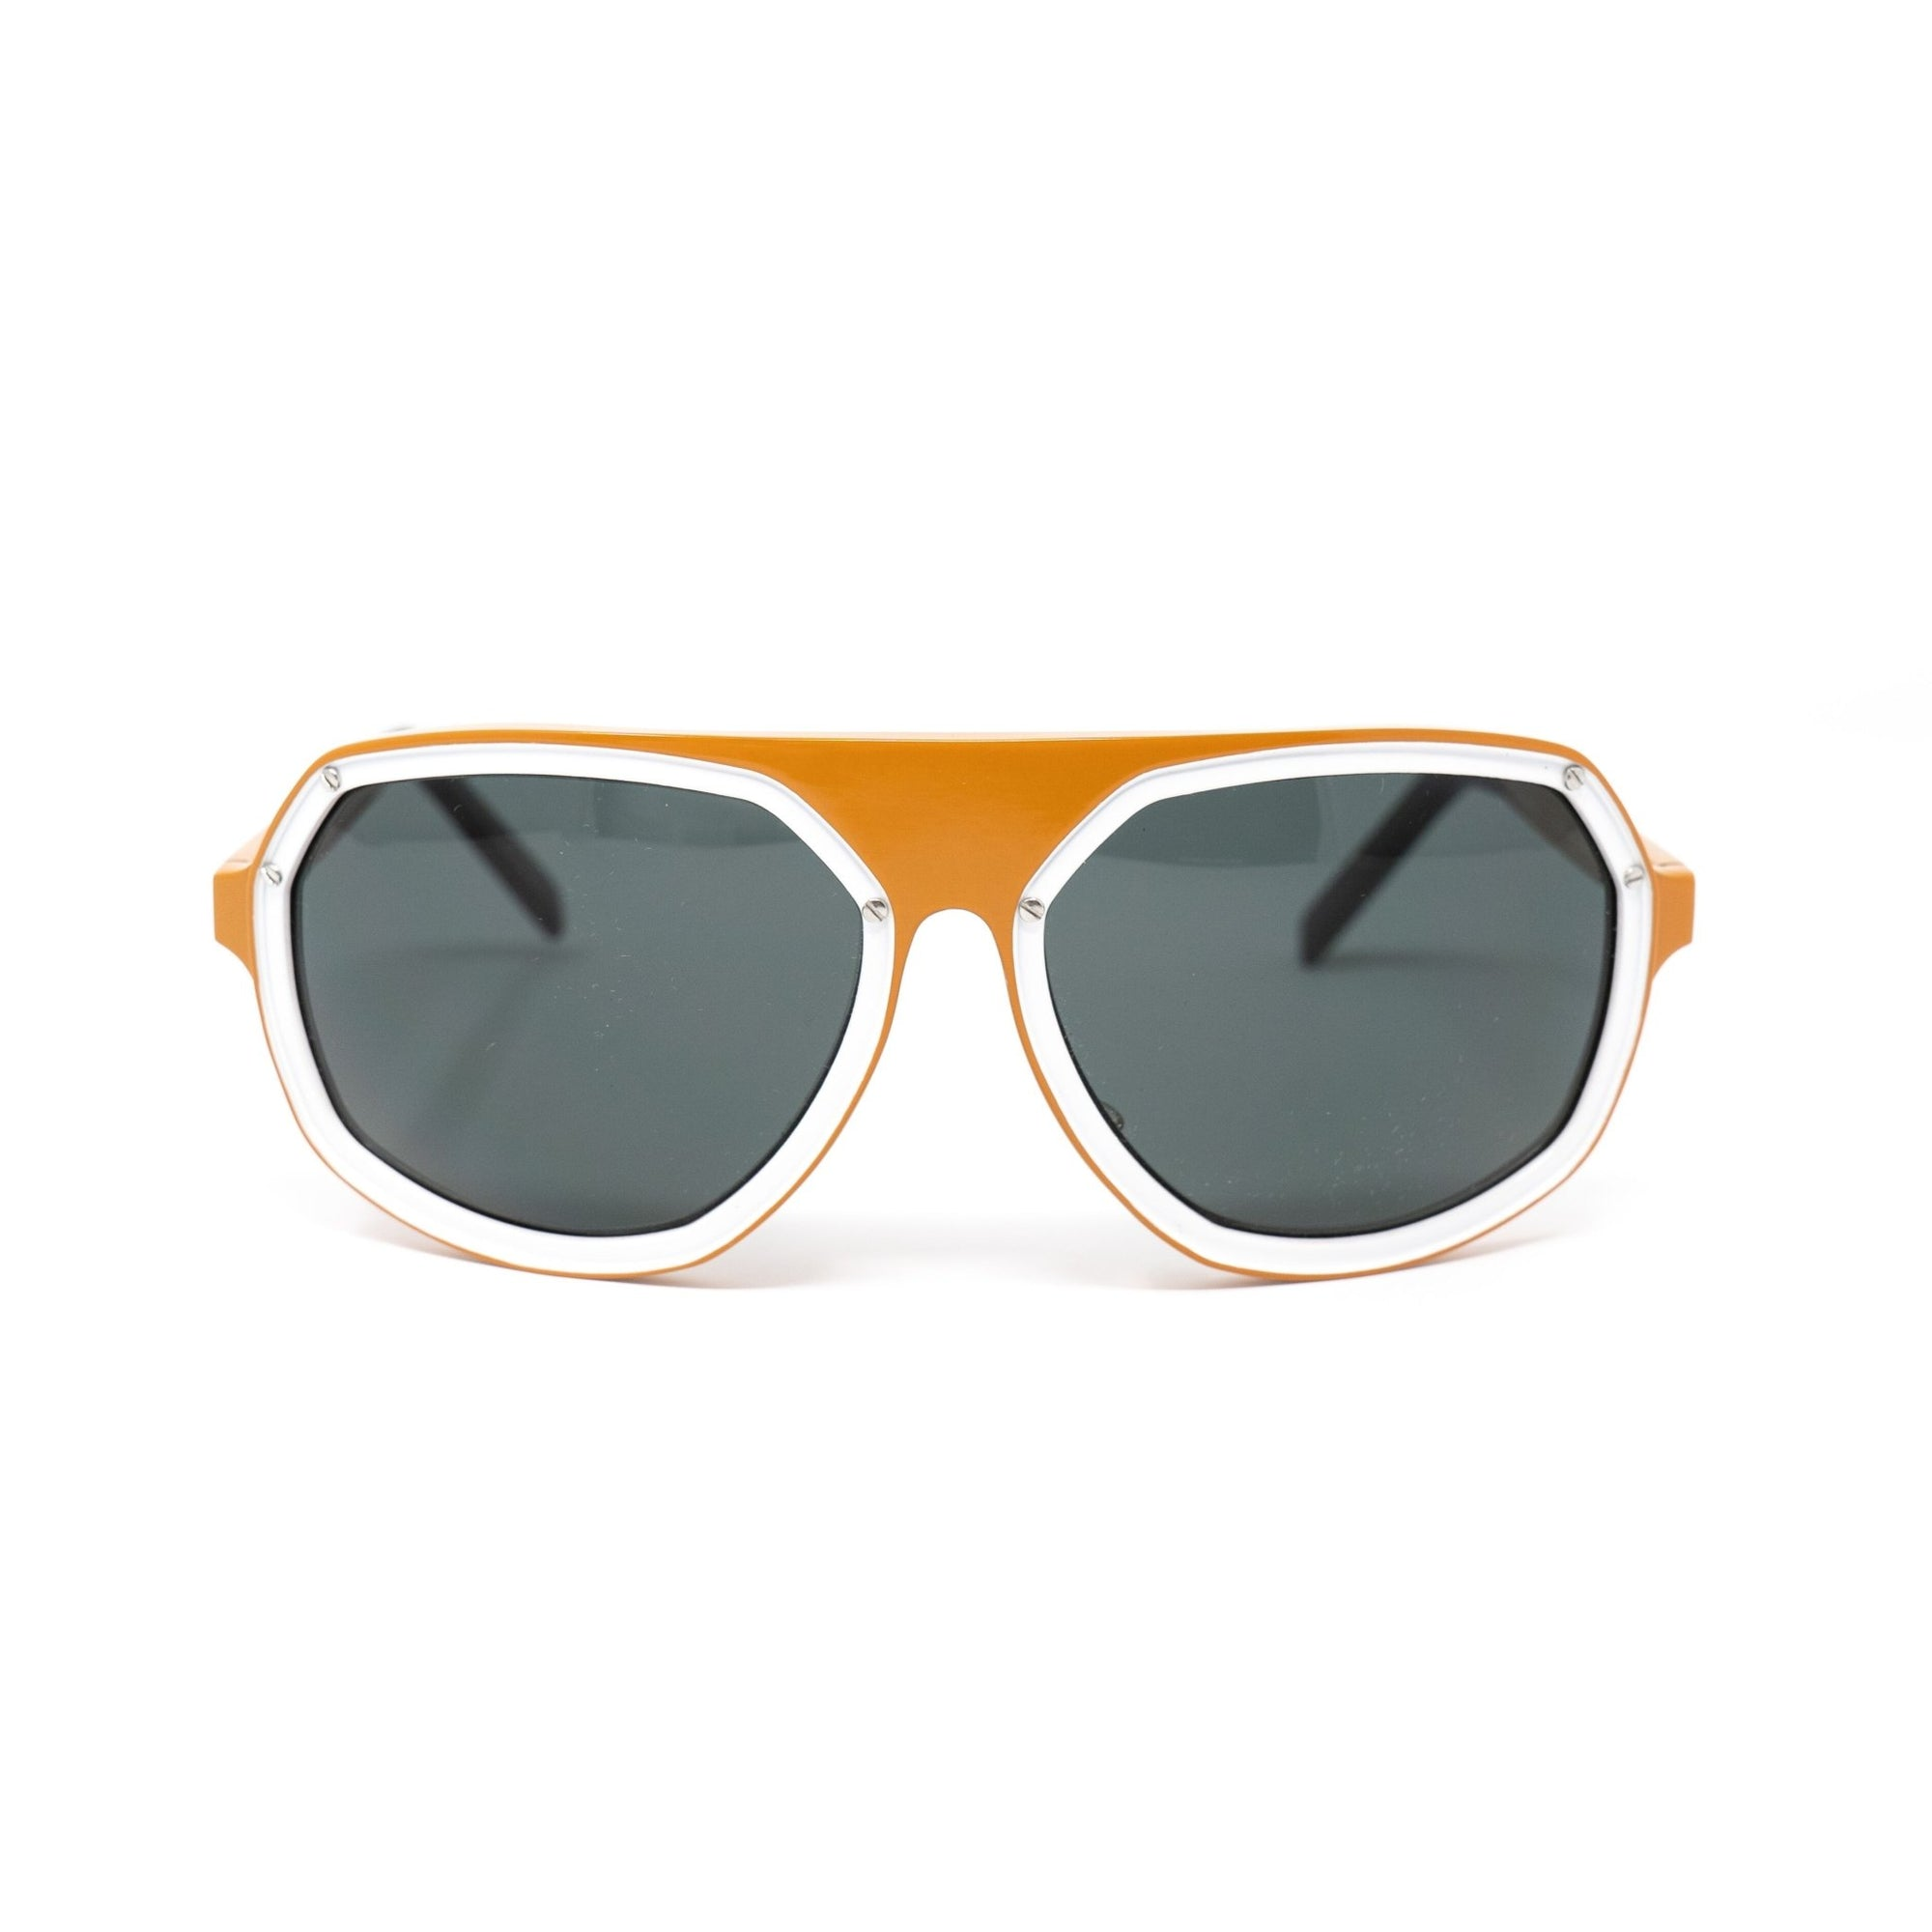 Raf Simons Sunglasses Angular Wrap Orange White Aluminium and Grey Lenses Category 3 - 8RAF5CORANGEWHITE - Watches & Crystals